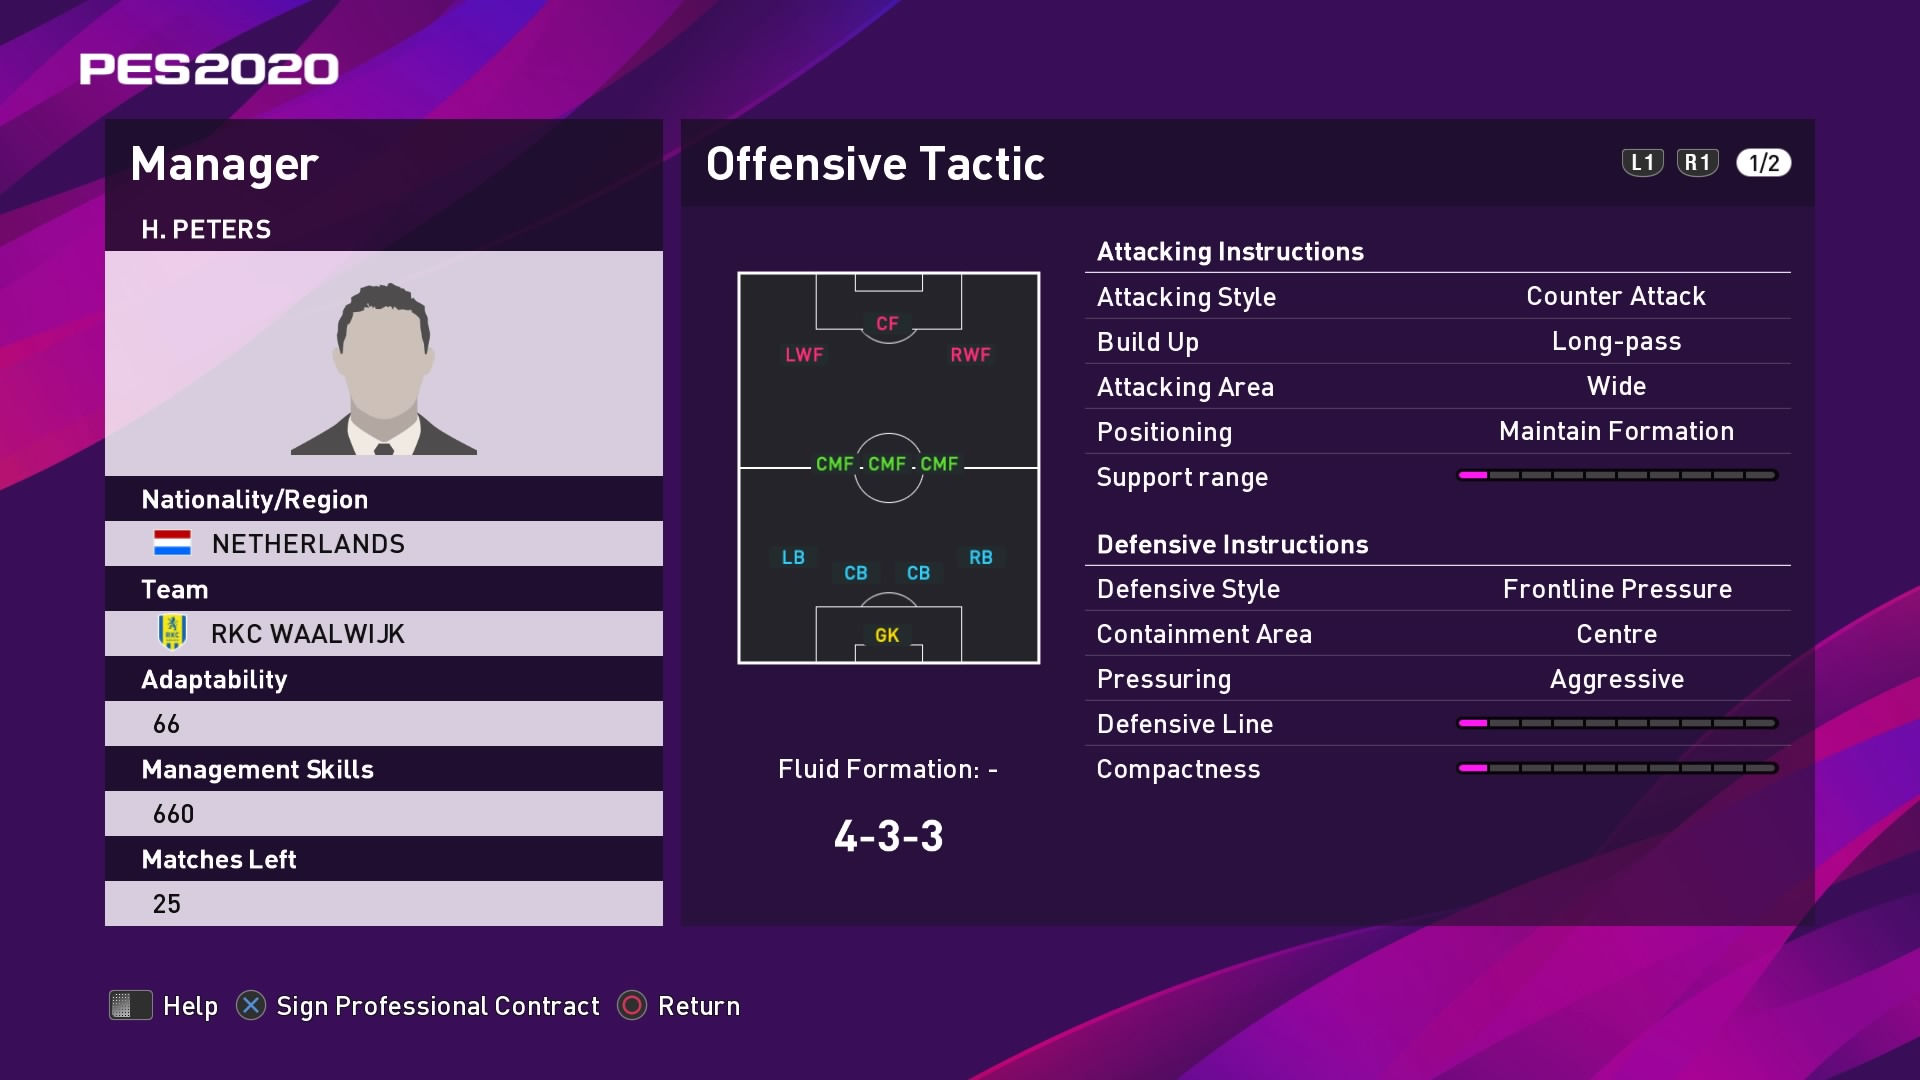 H. Peters (Fred Grim) Offensive Tactic in PES 2020 myClub